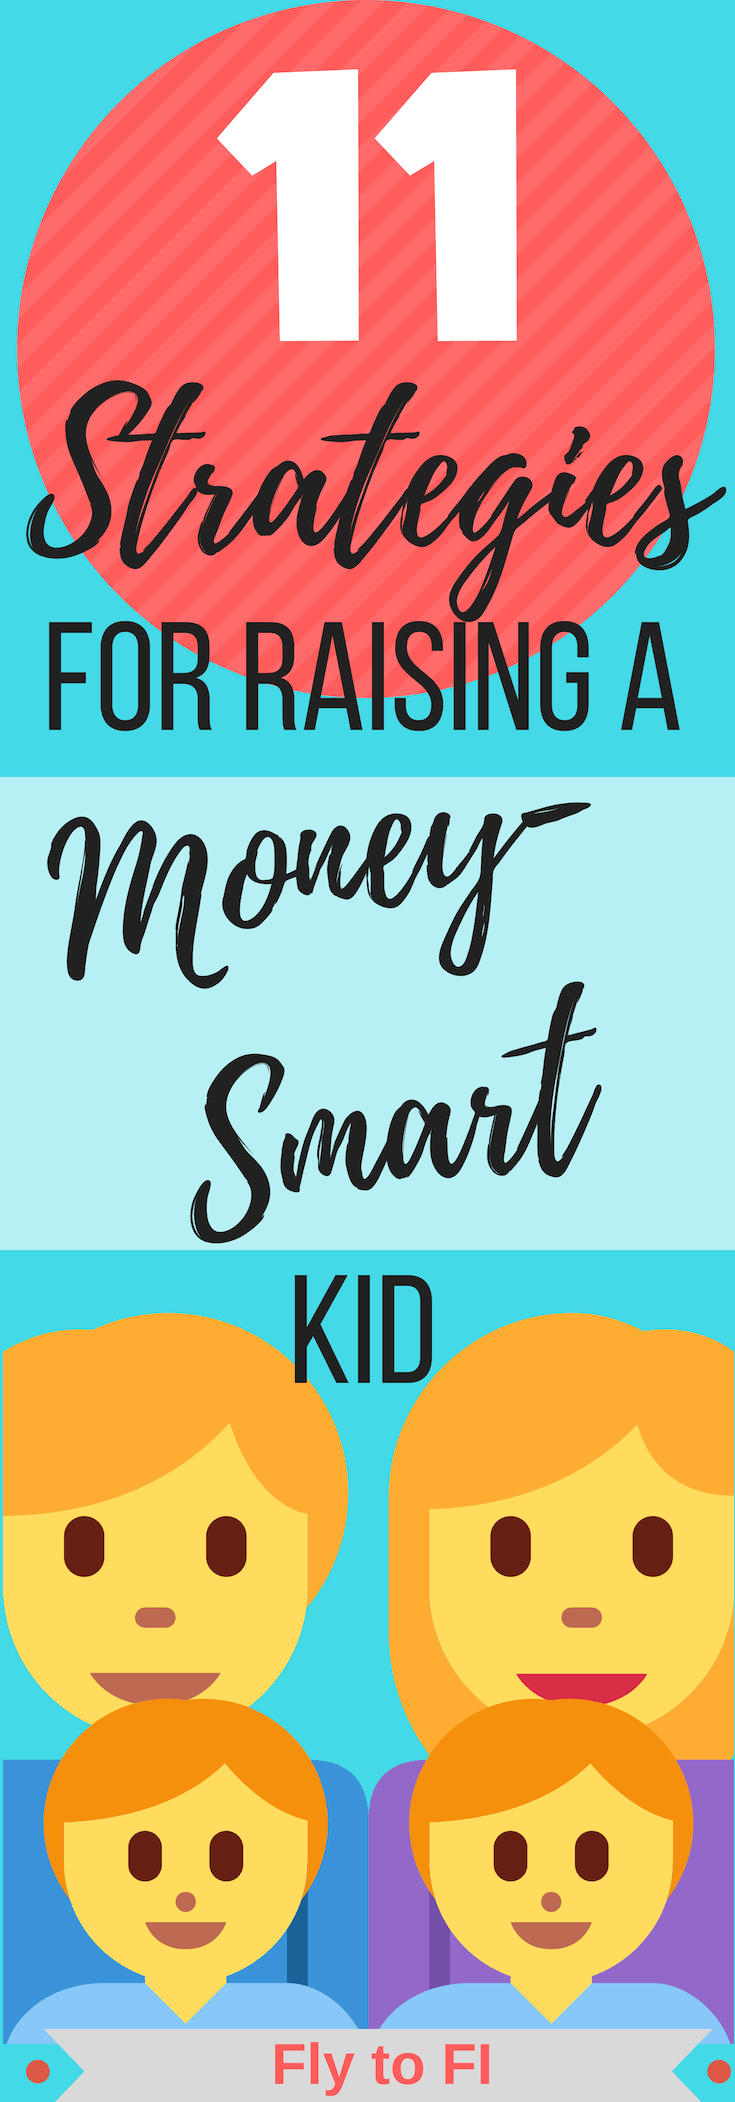 11 Strategies for Raising a Money-Smart Kid